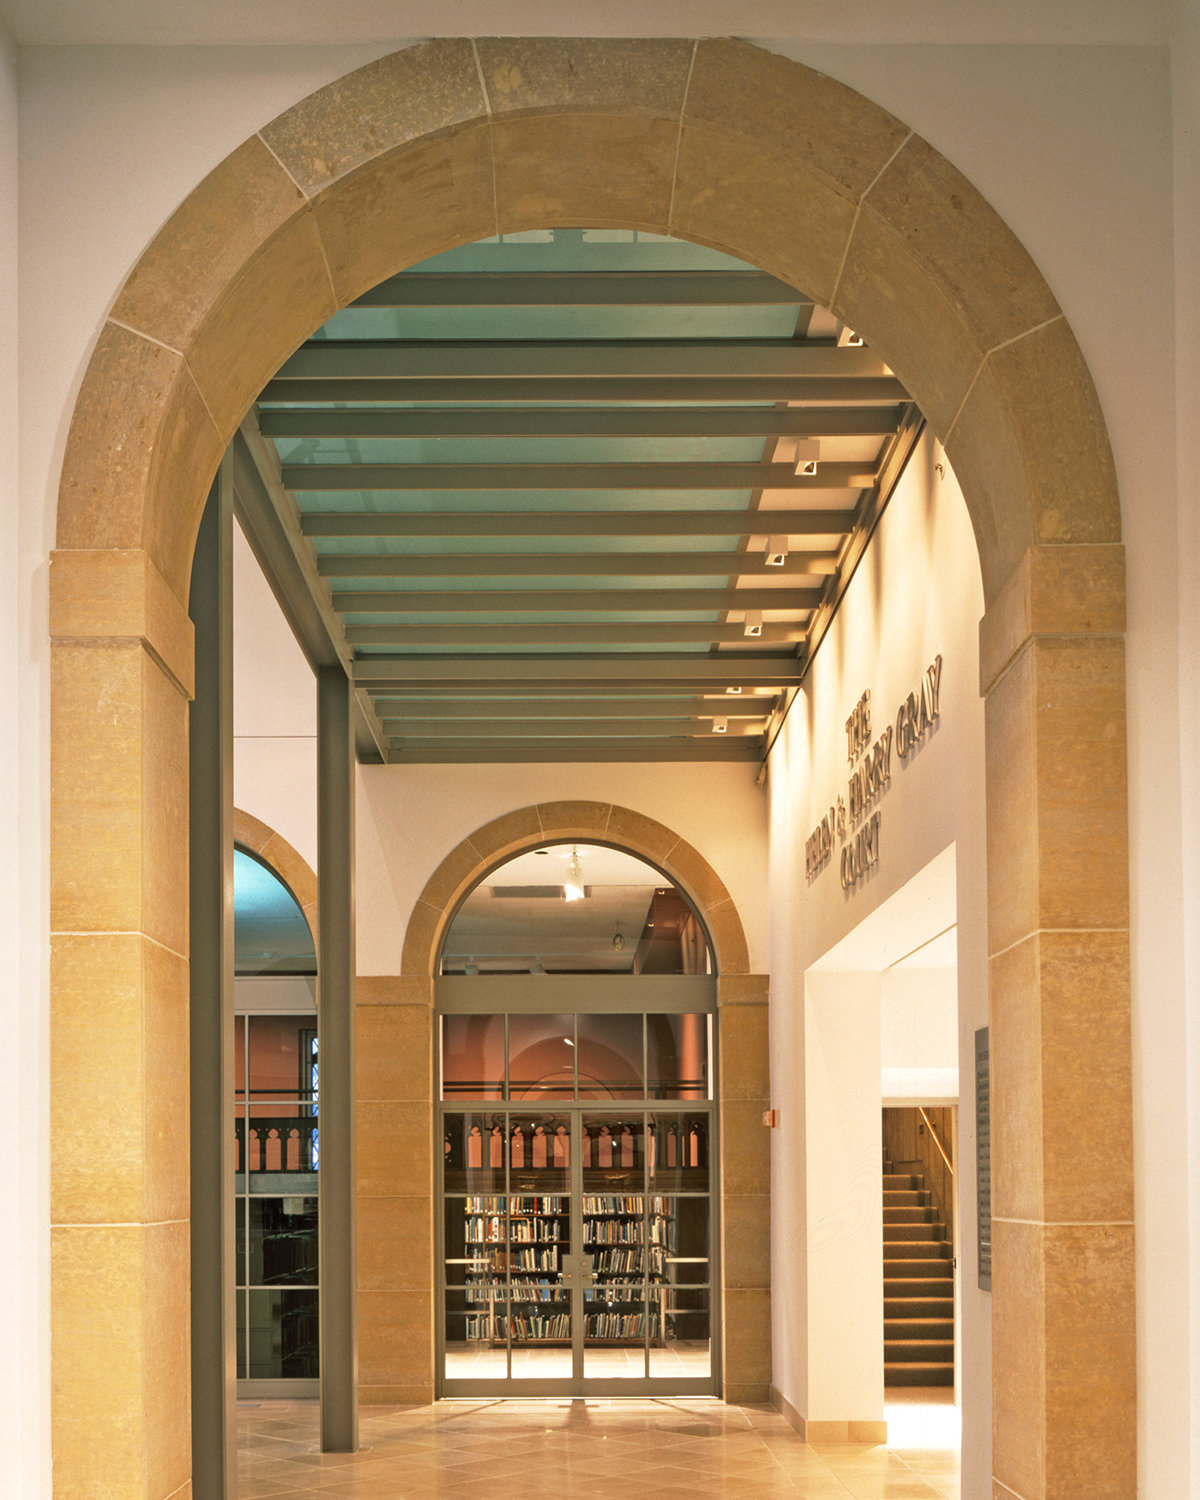 6 tskp wadsworth atheneum the helen and harry gray court limestone arches 1400 xxx q85